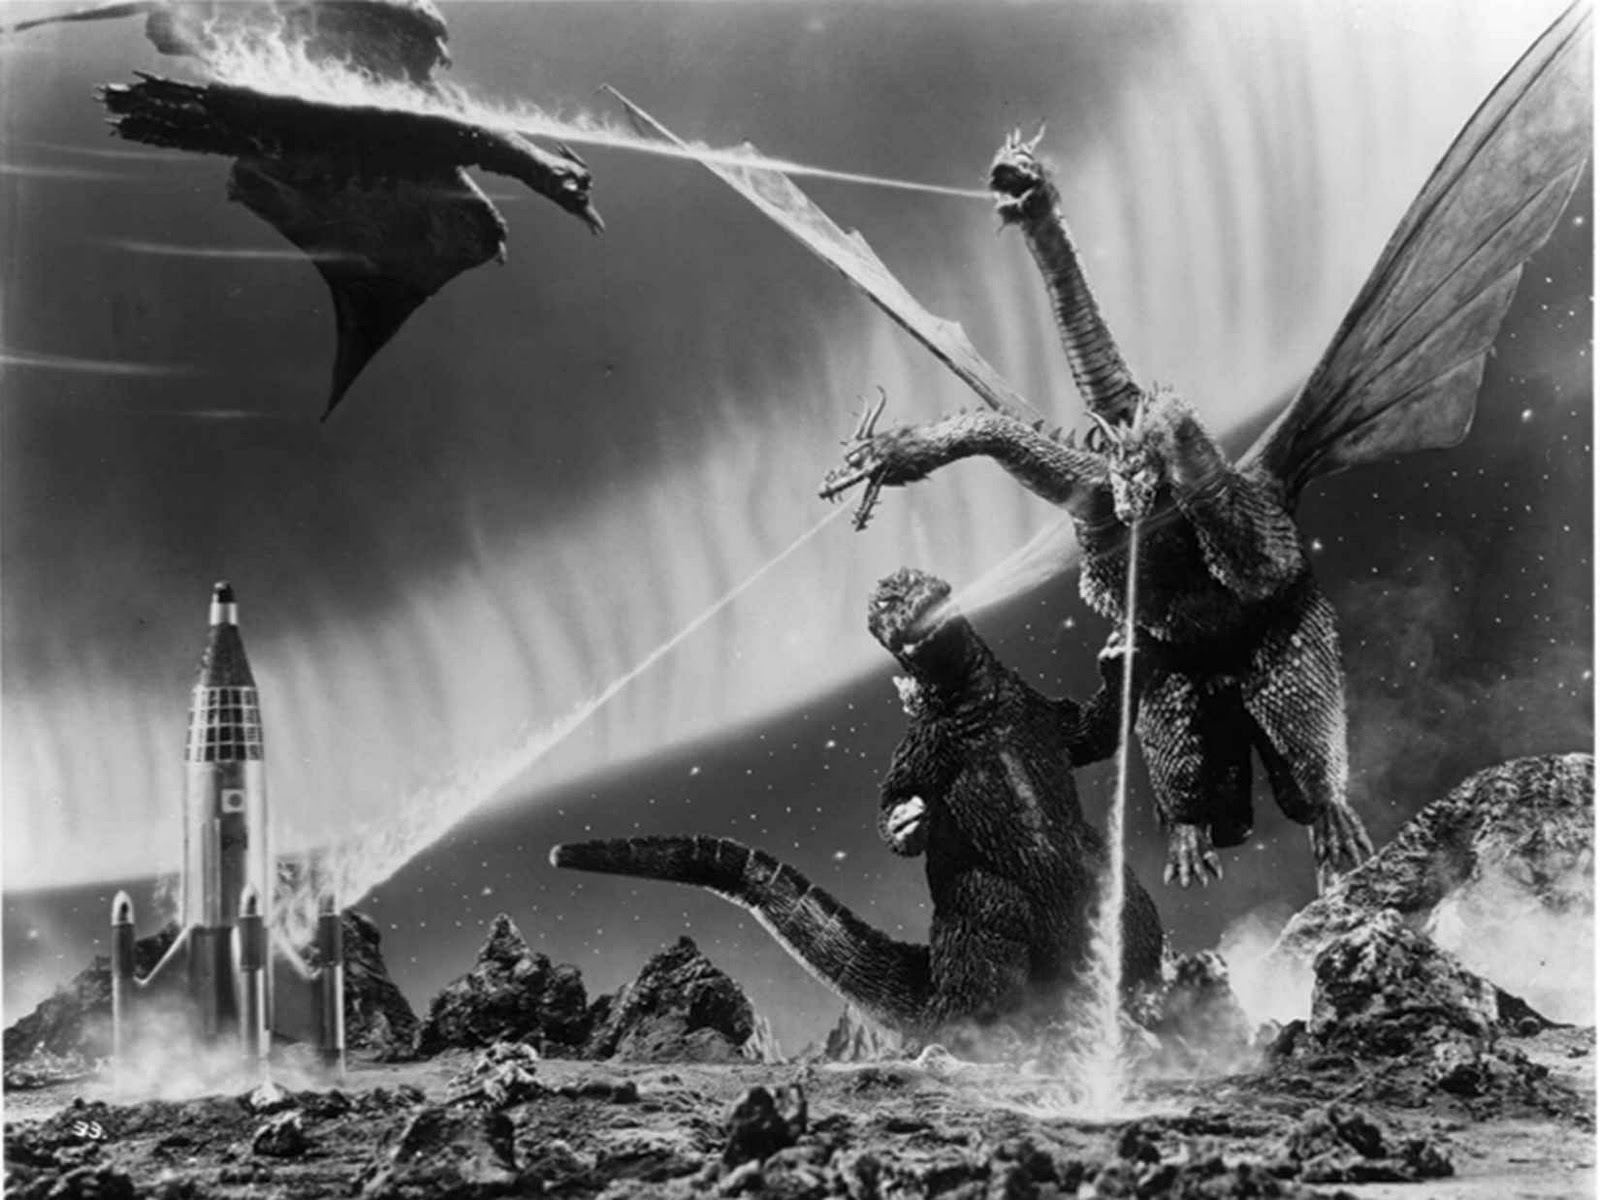 Godzilla, Rodan and King Ghidorah